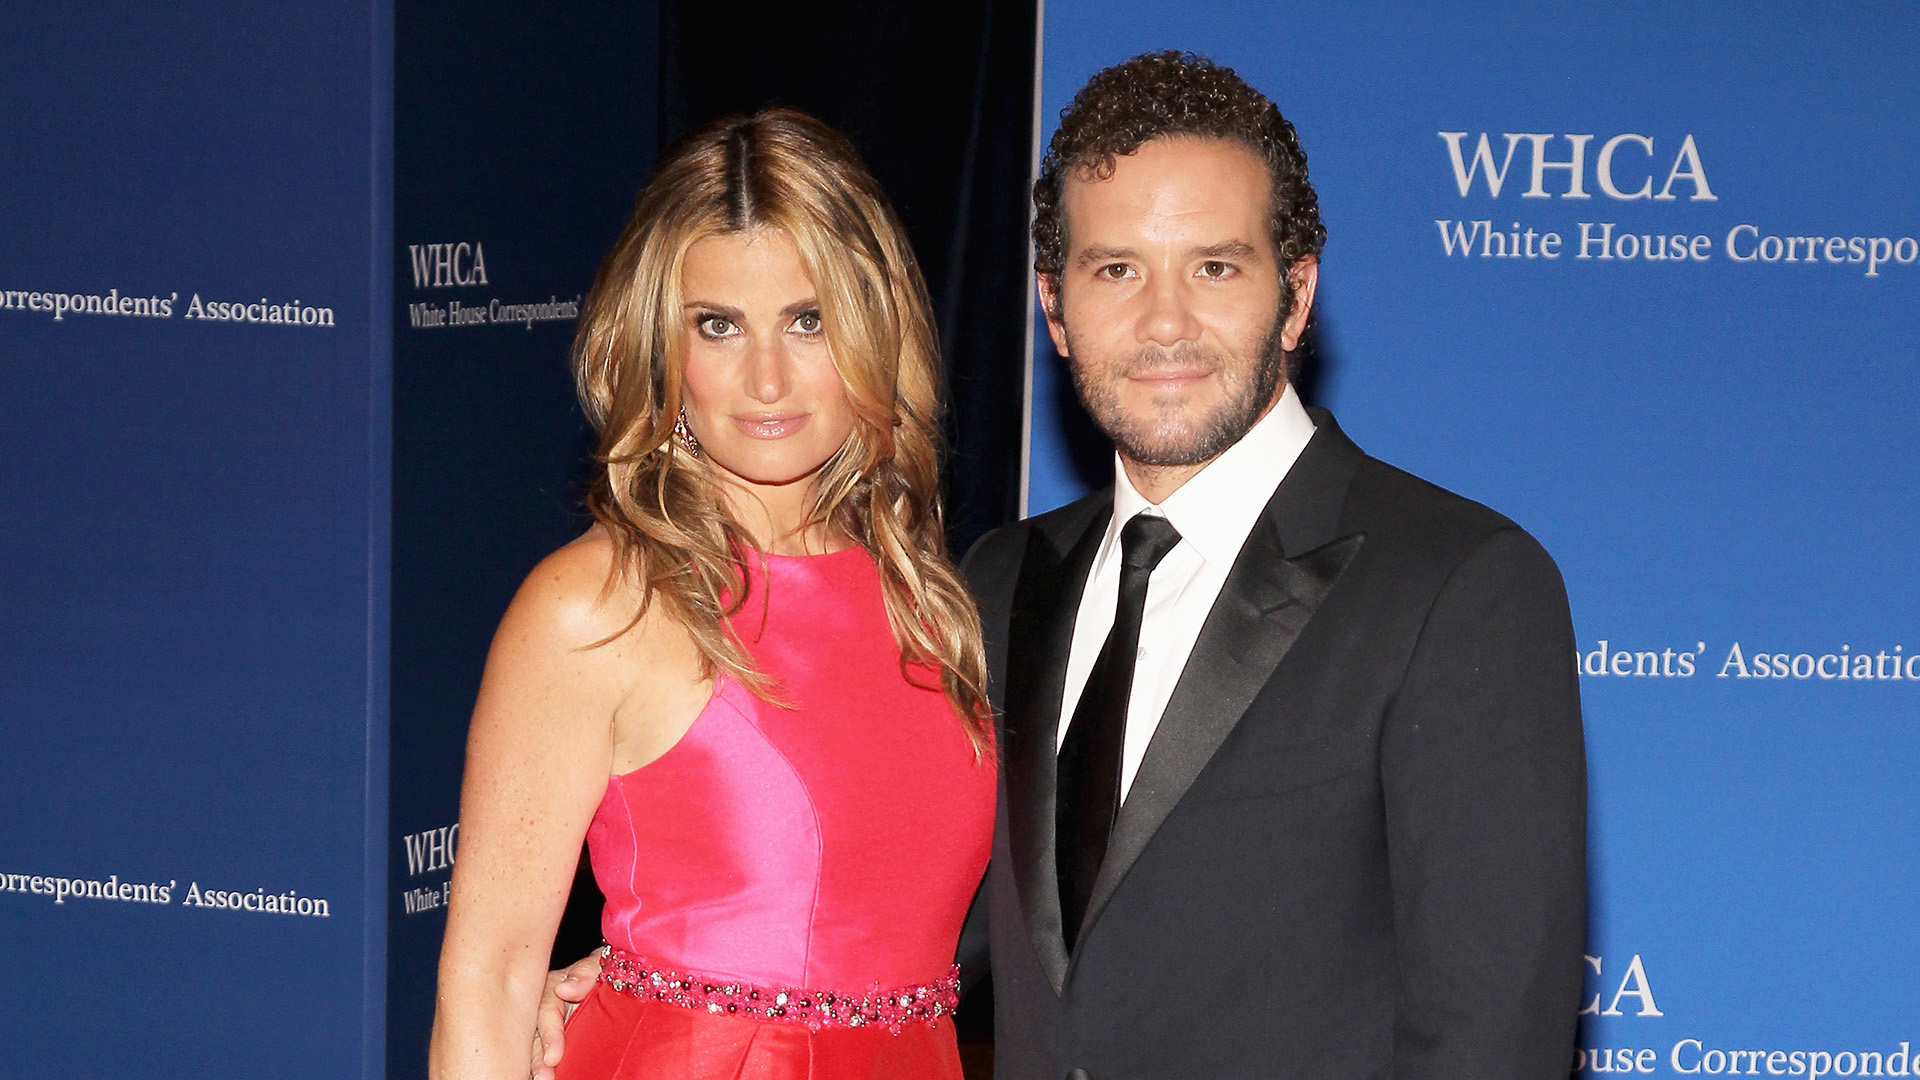 Idina Menzel ties the knot with 'Rent' co-star in secret, 'magical' wedding